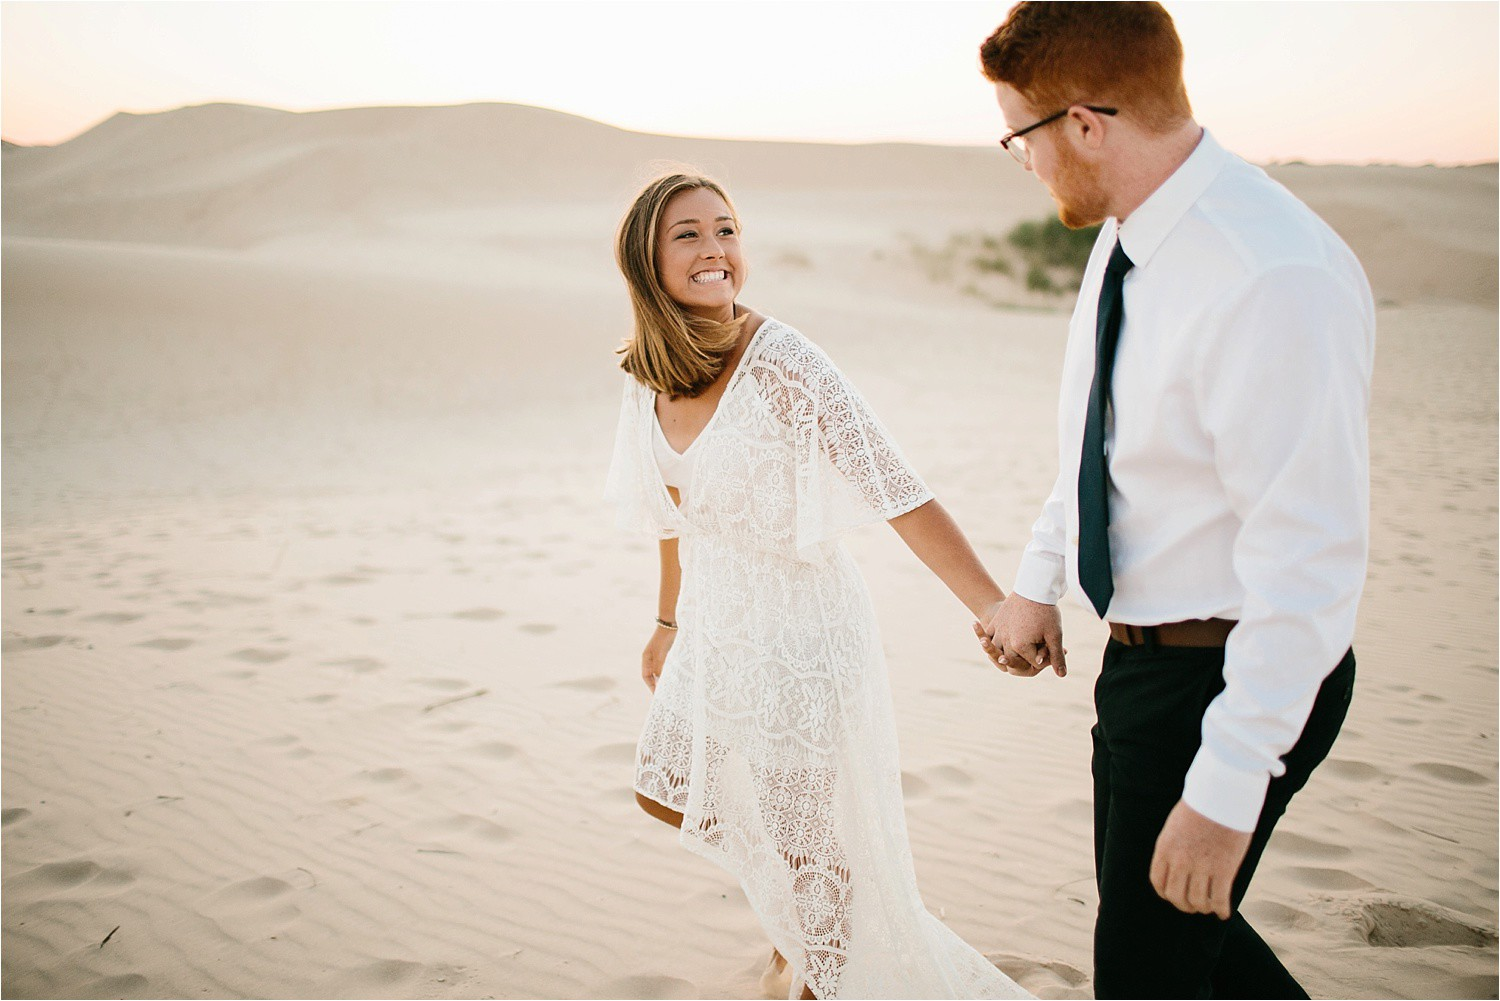 Lauren + Jacob __ a monahans sand dunes engagement session at sunrise by North Texas Wedding Photographer, Rachel Meagan Photography __ 04